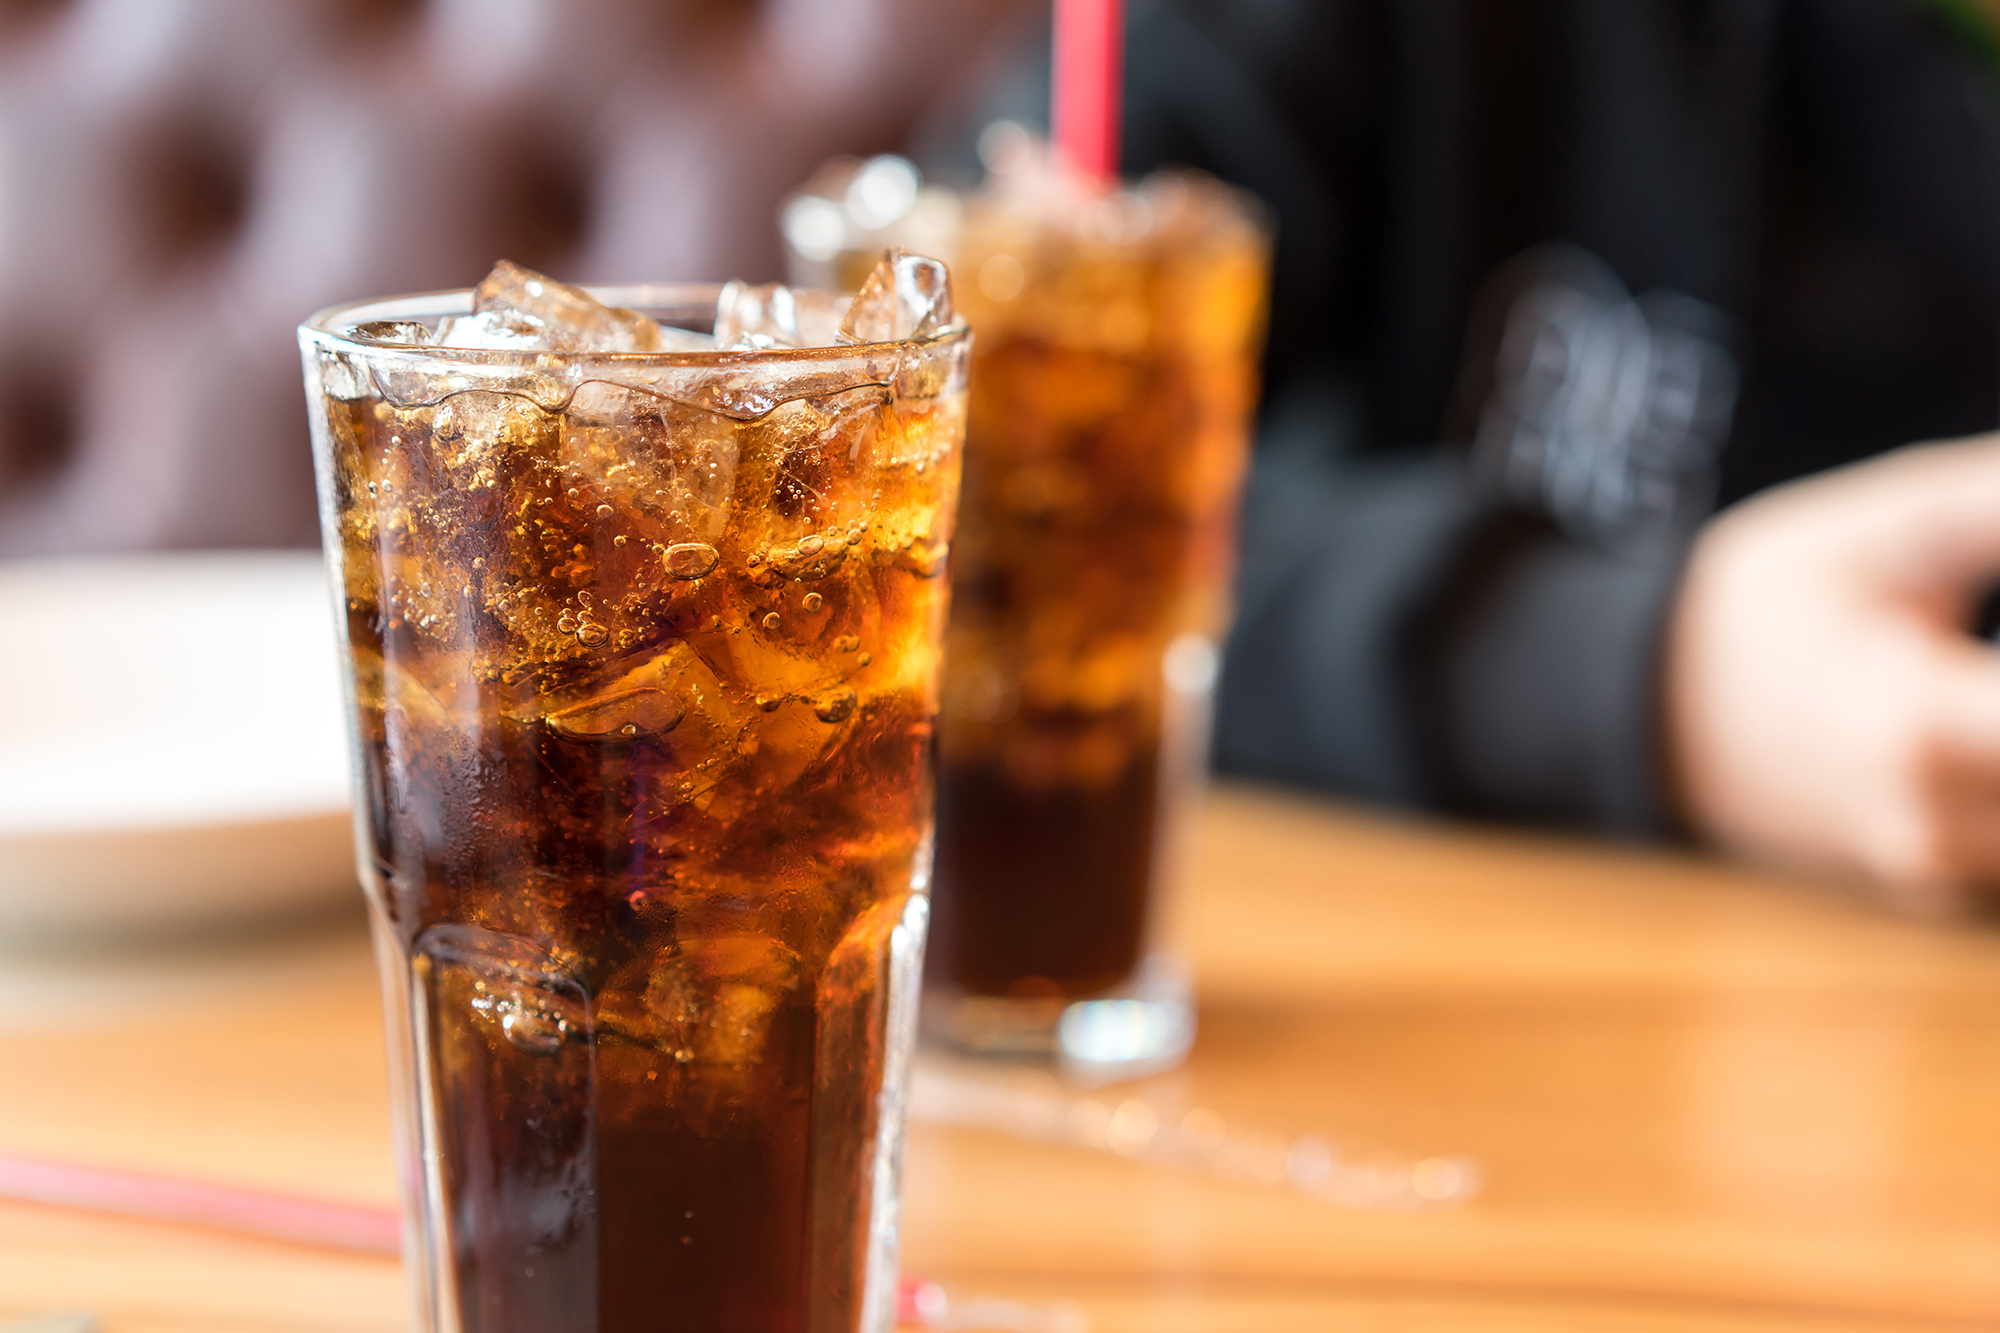 New study links sugar-free sodas to higher risk of death